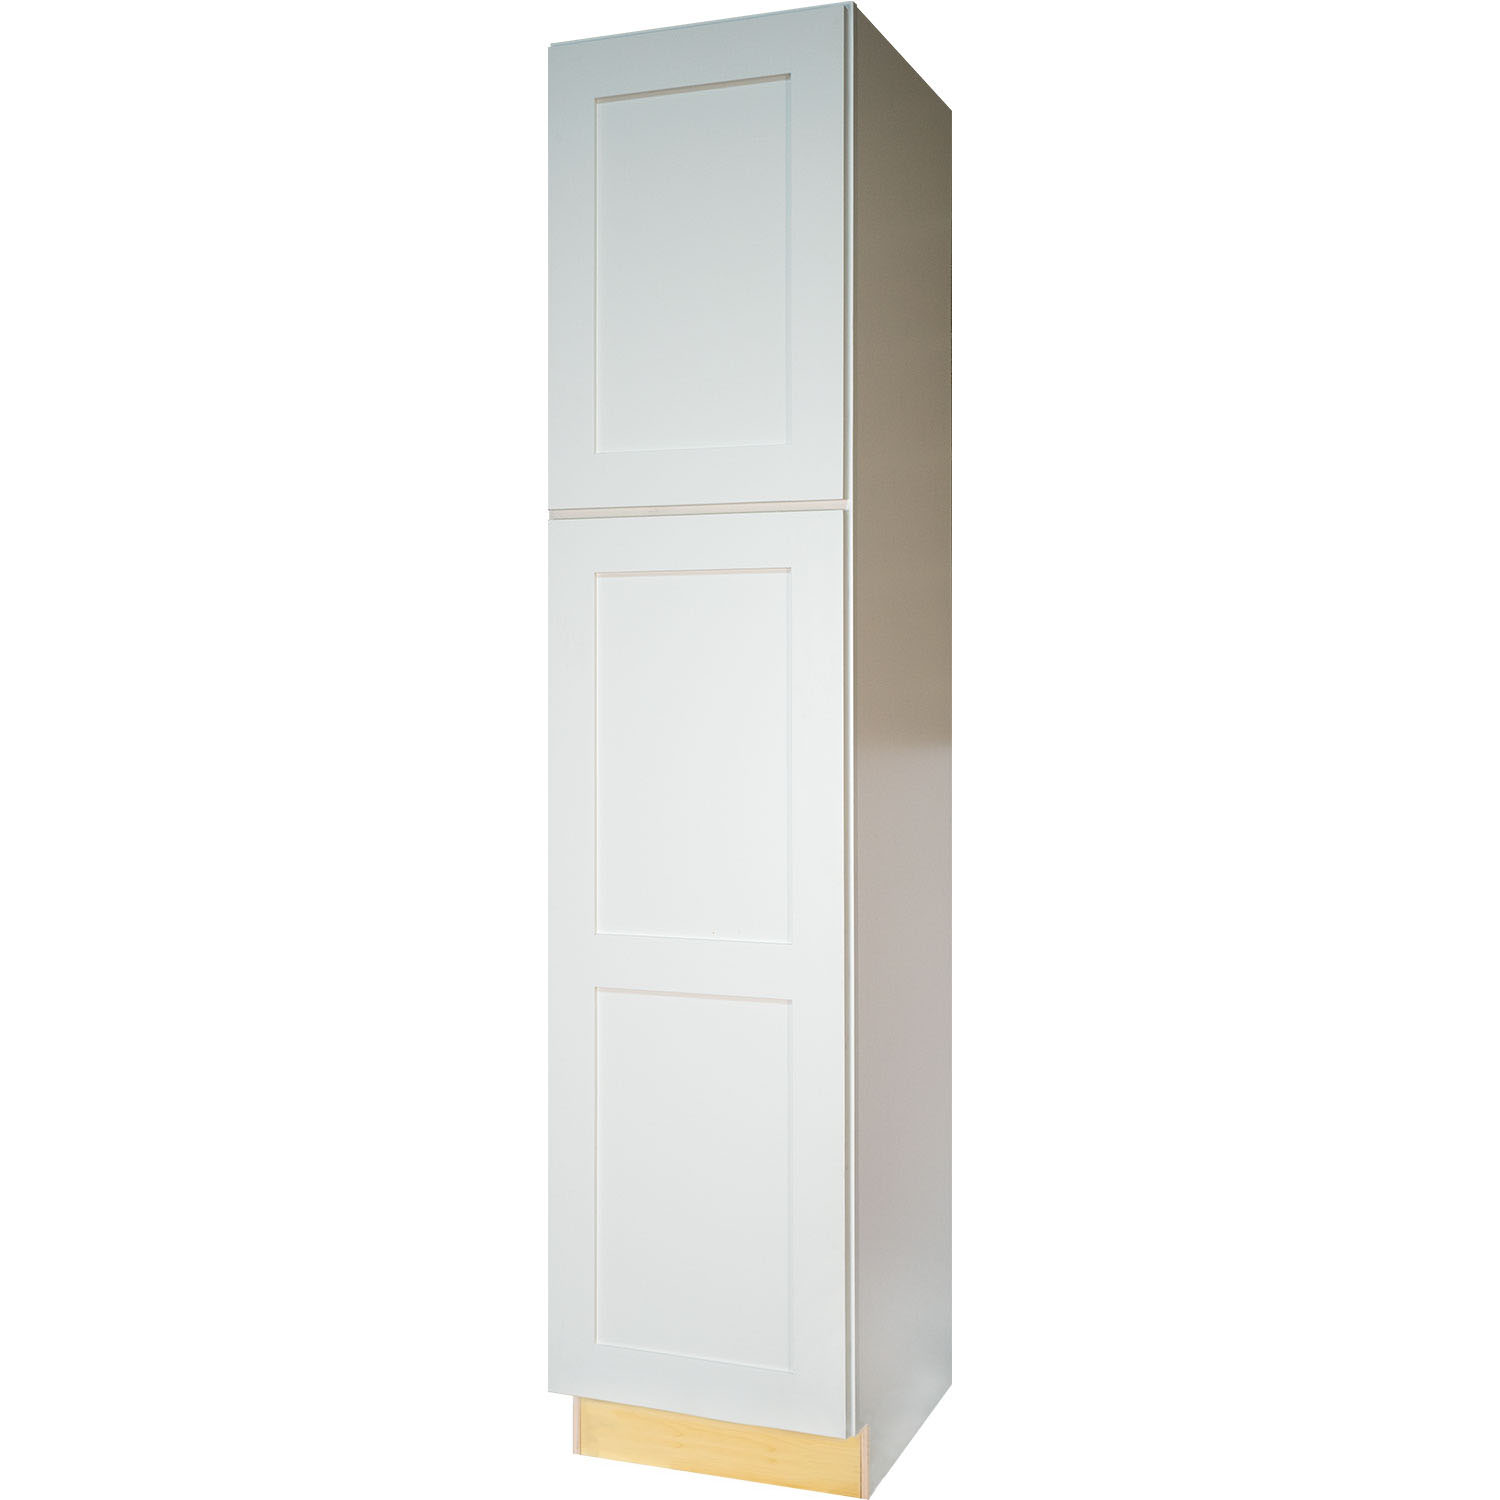 Everyday Cabinets 18 Inch White Shaker Pantry / Utility Kitchen Cabinet